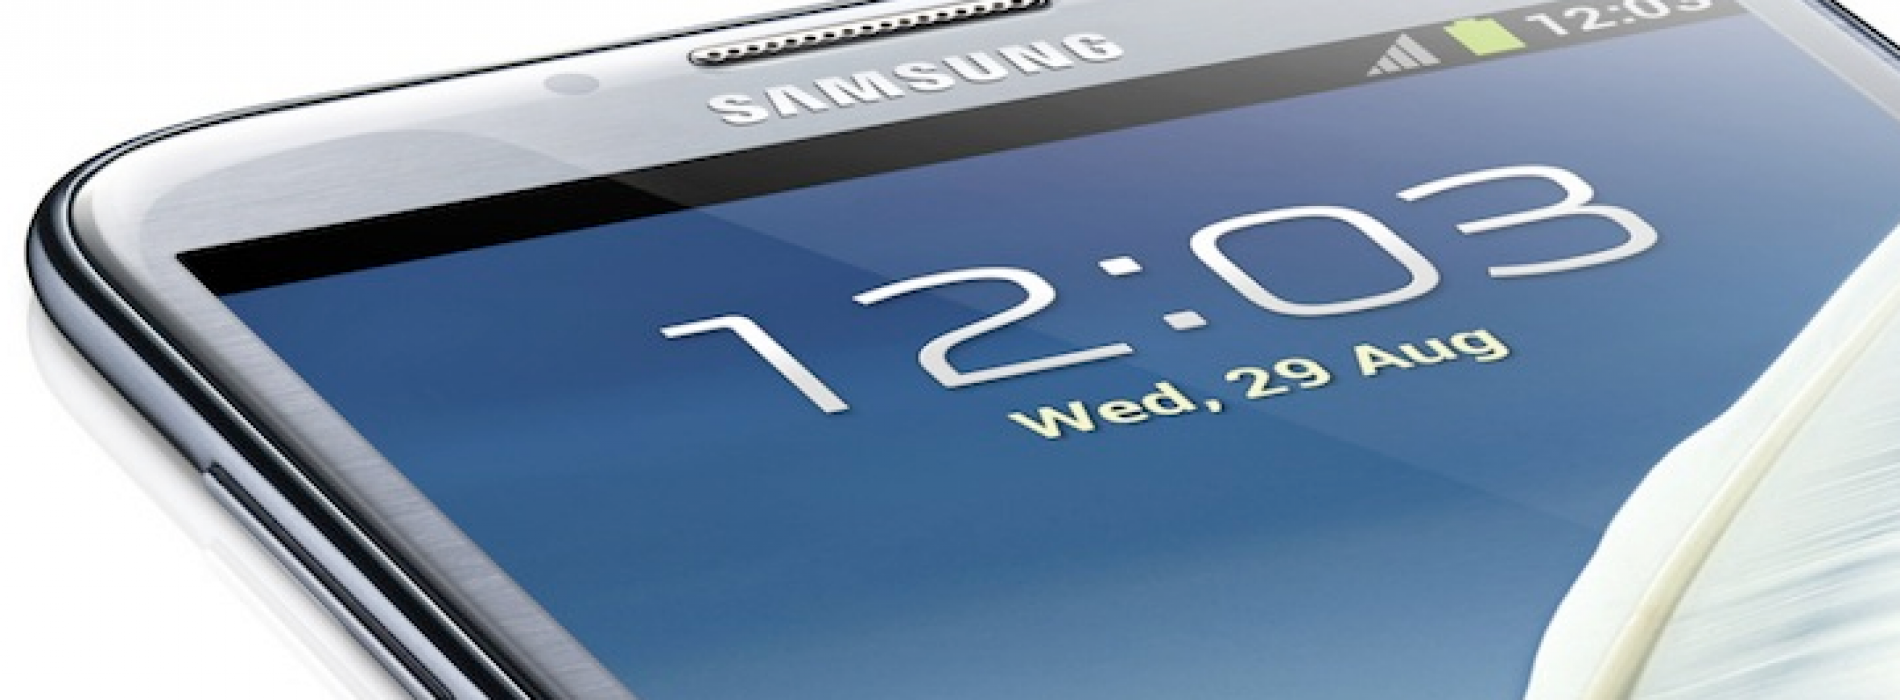 Samsung Galaxy Note II officially debuts